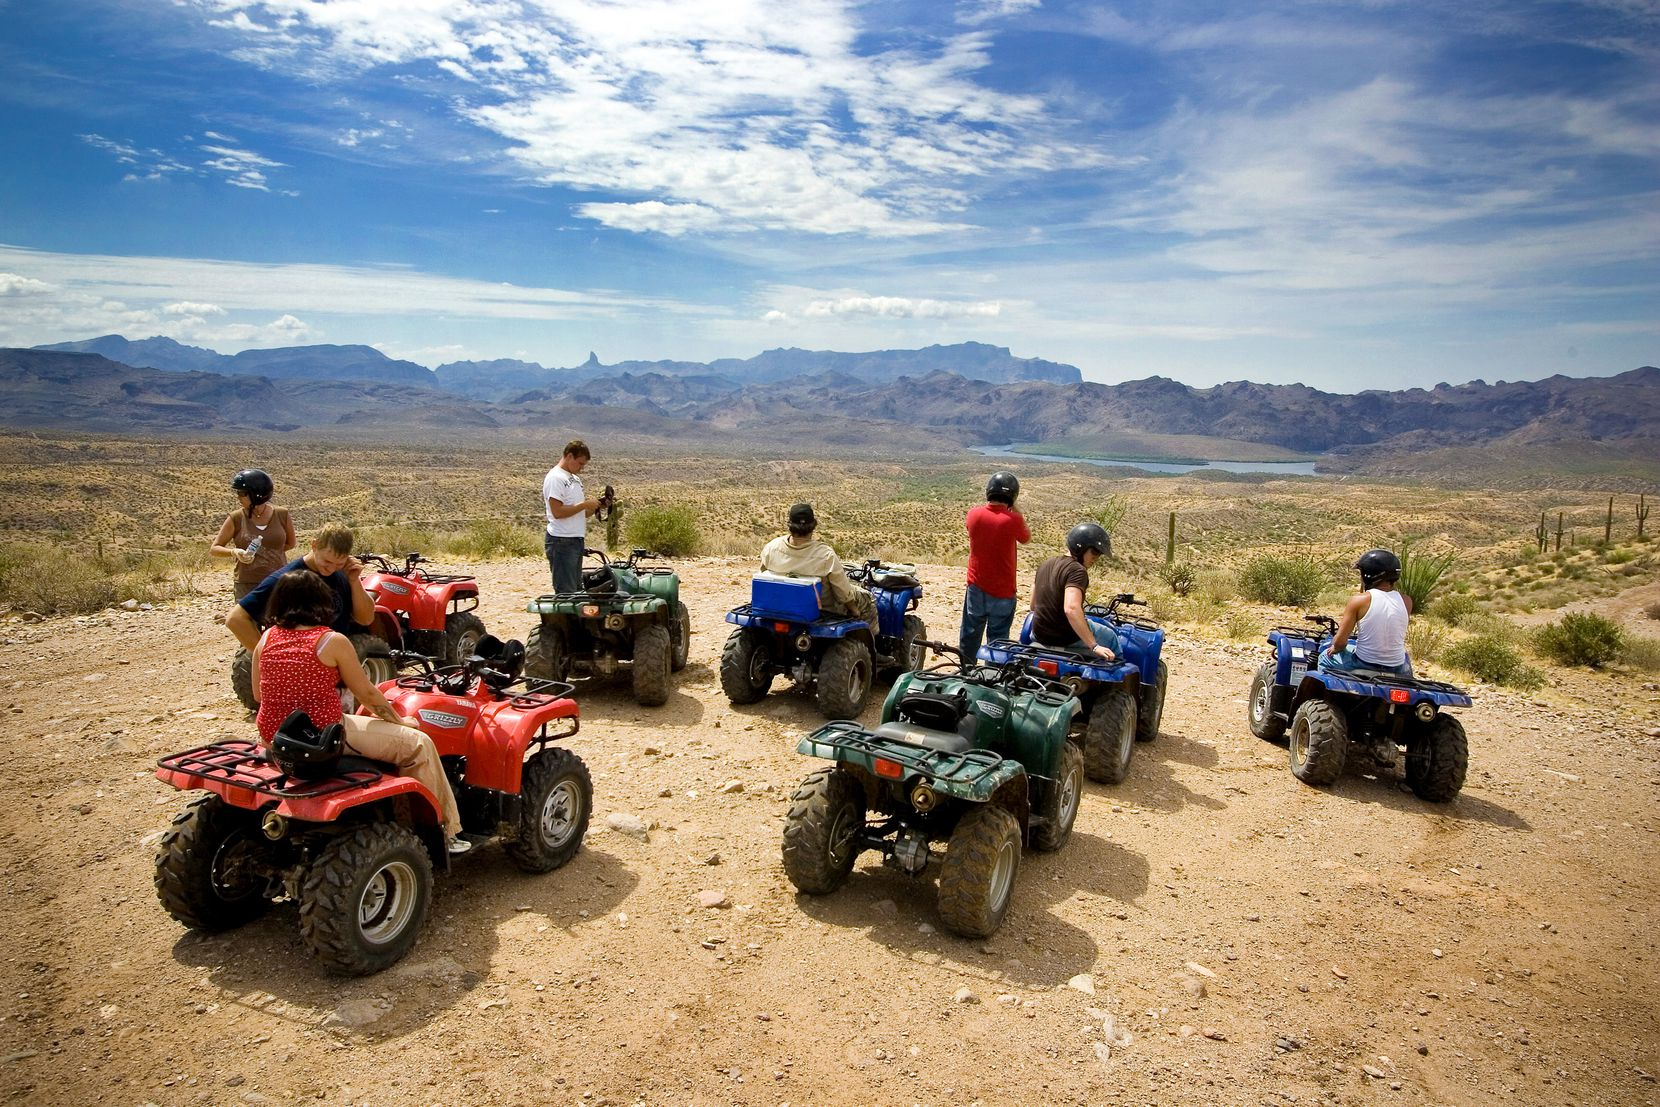 Renting an ATV is a great way to see the desert landscape near Scottsdale, Ariz.